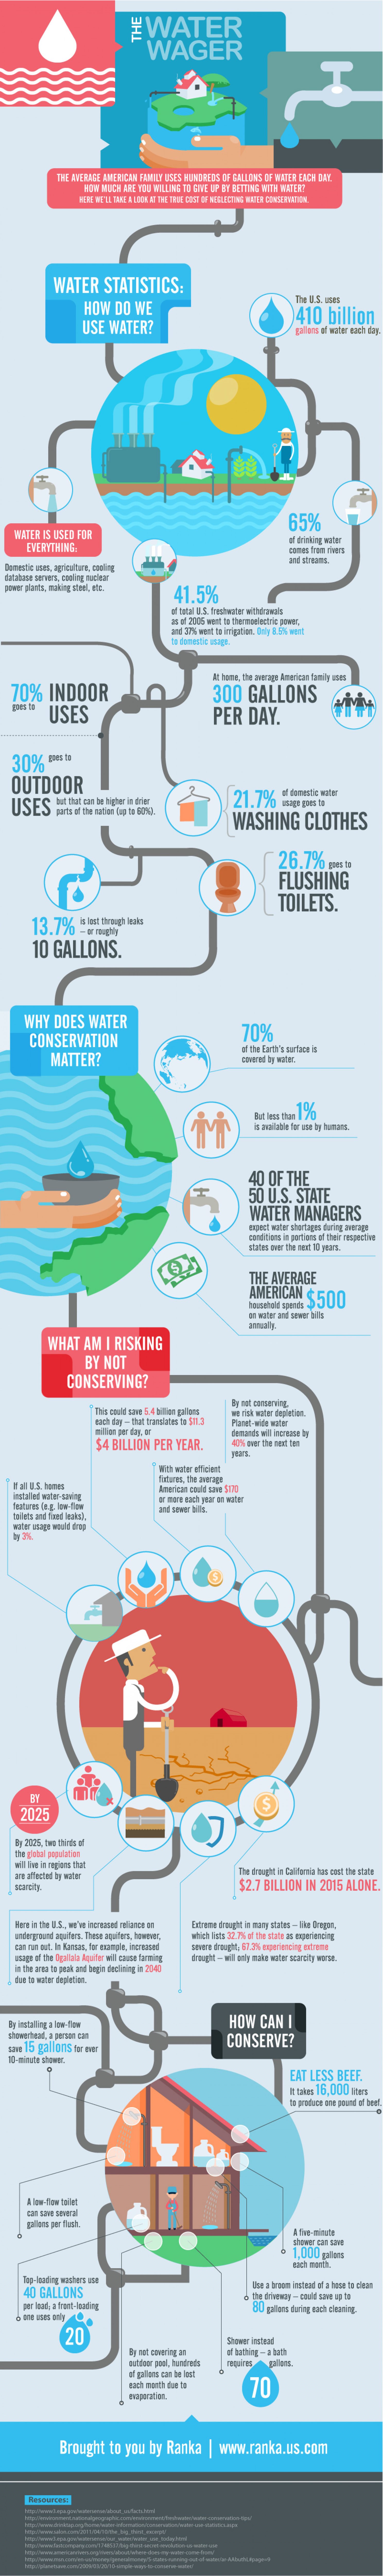 The Water Wager Infographic